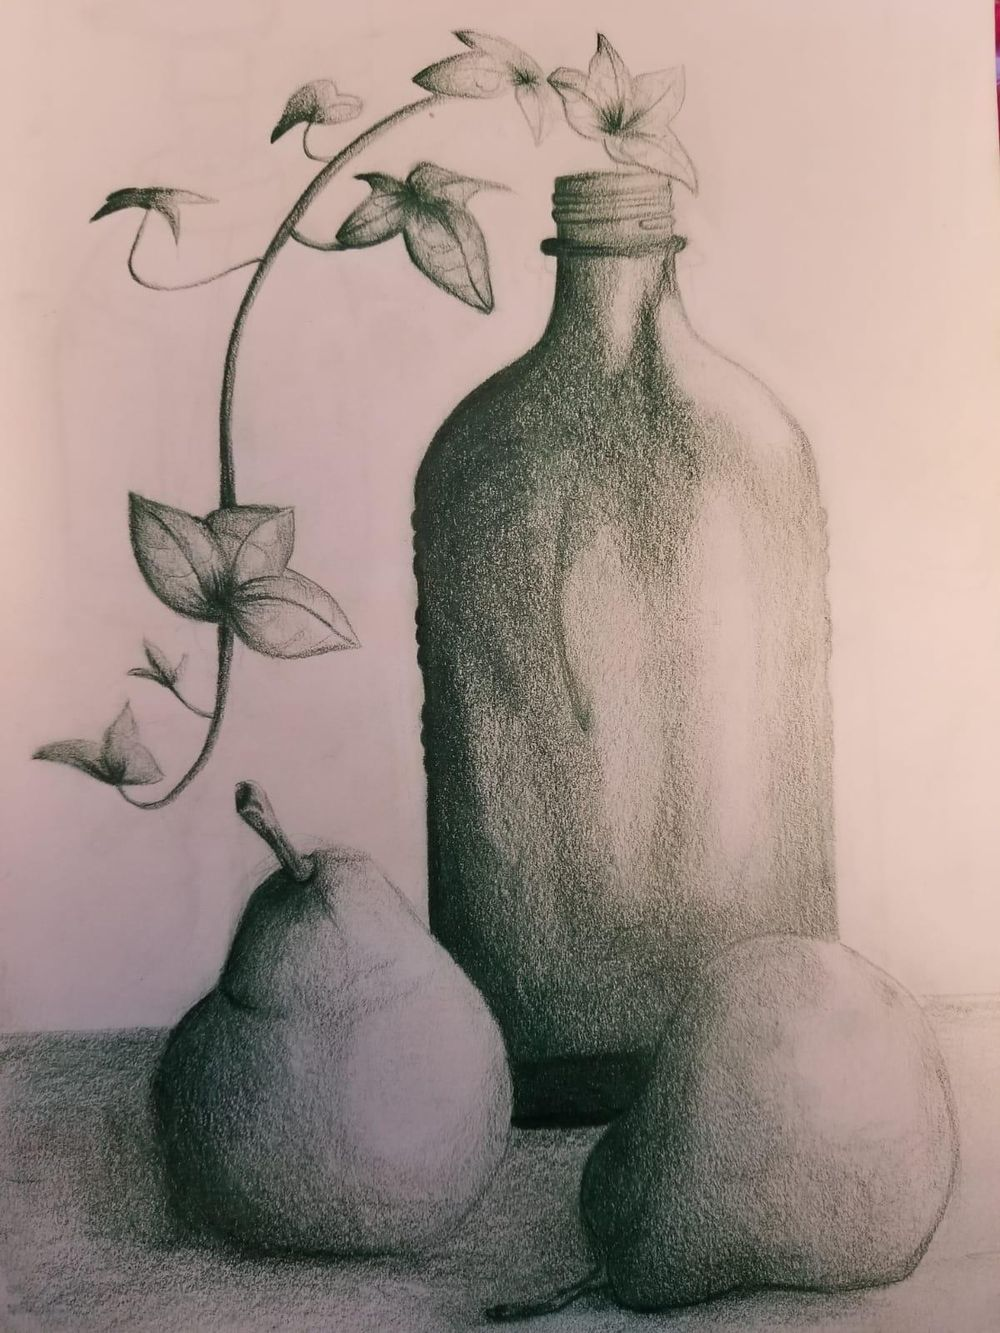 Organic form - image 5 - student project